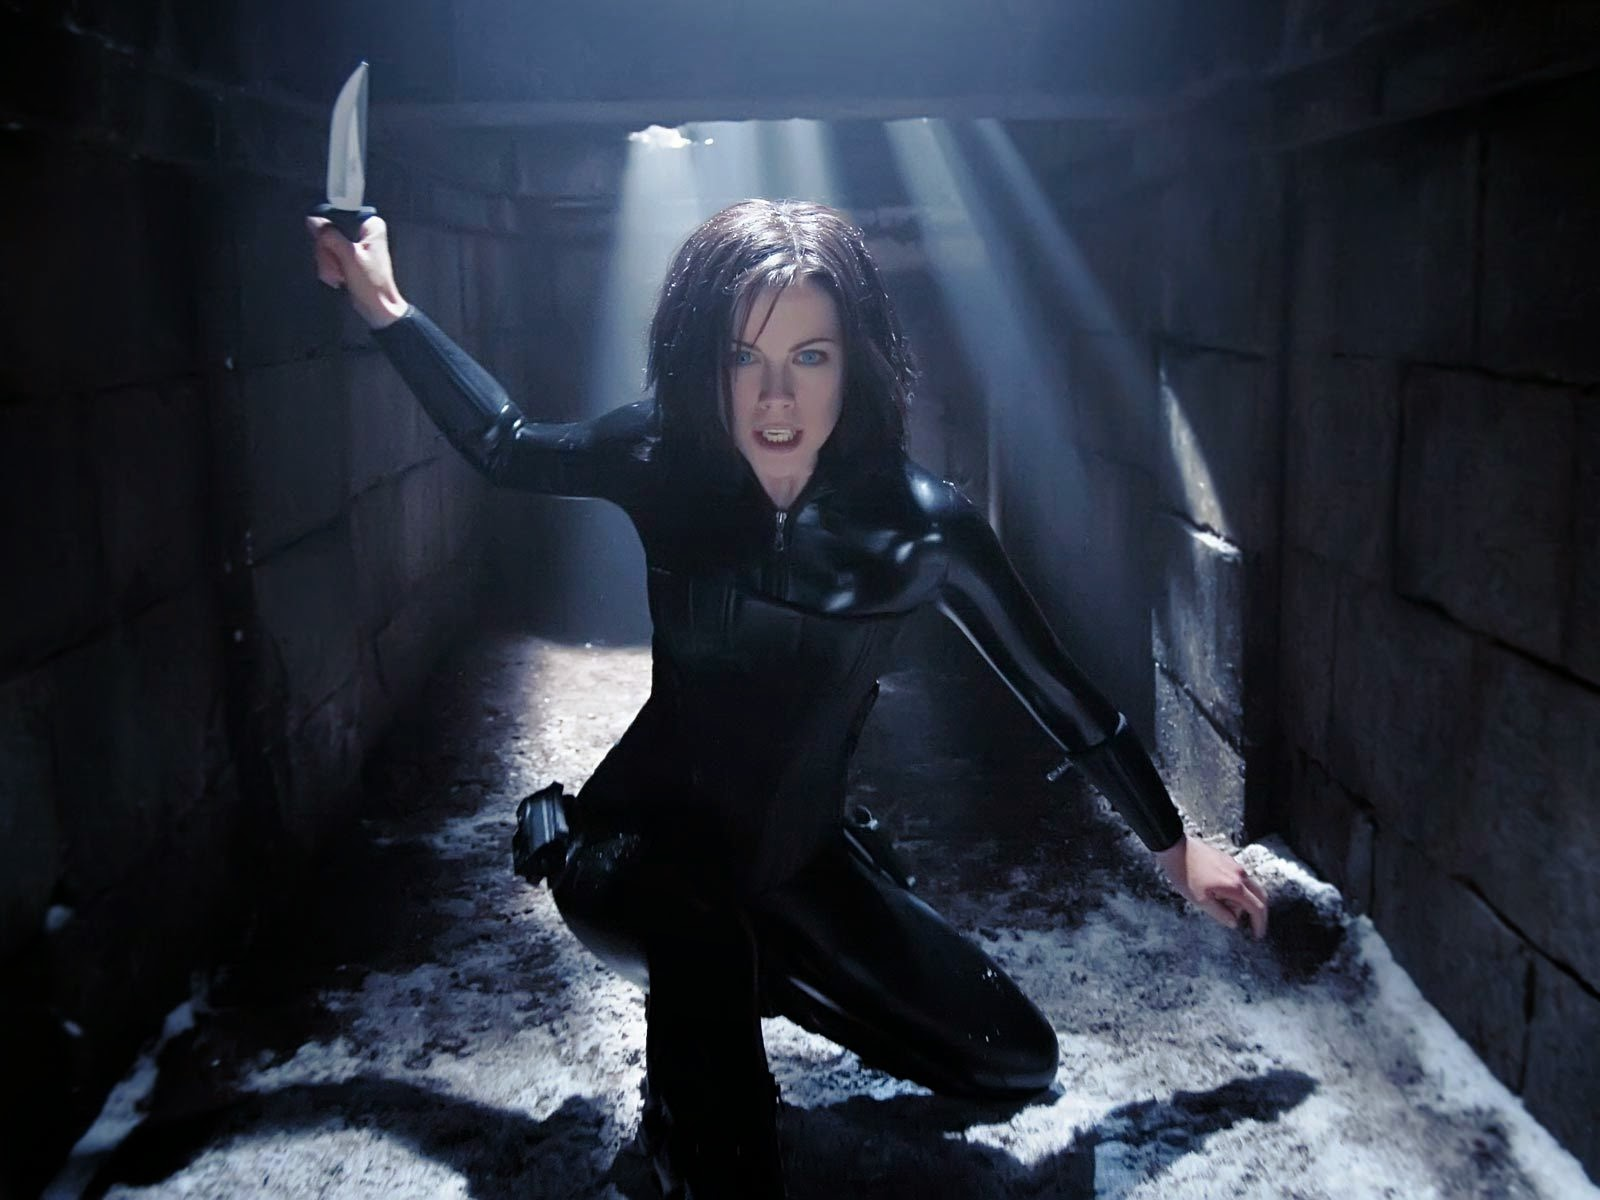 Will Kate Beckinsale Return in Underworld 4? - MovieWeb